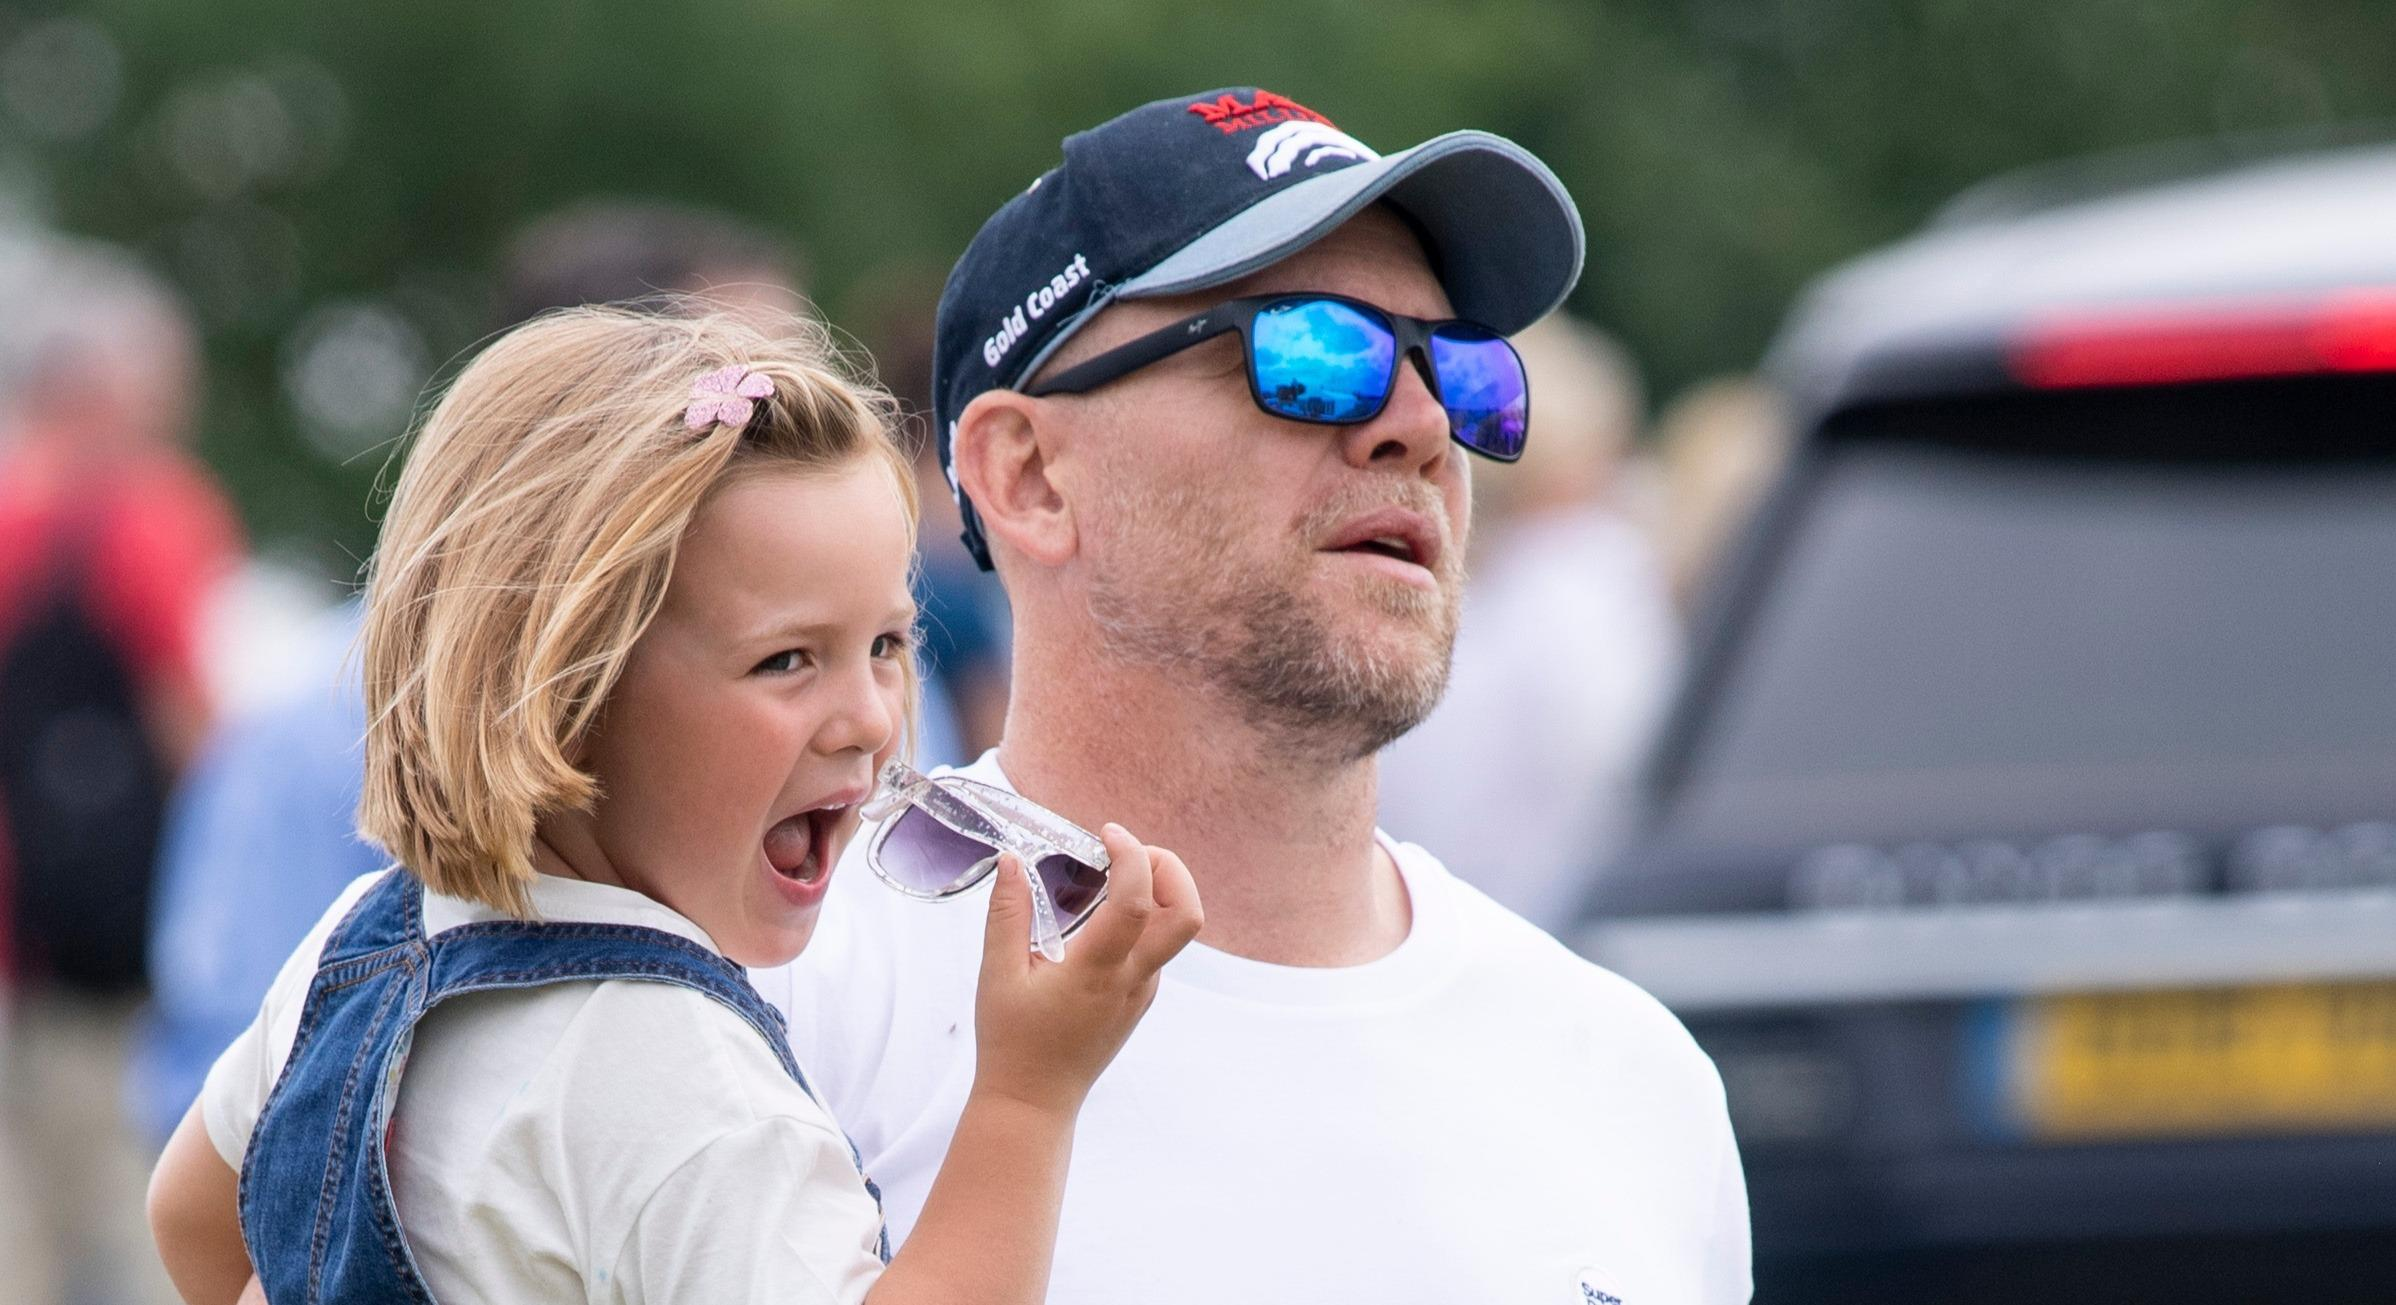 Mike Tindall reveals homeschooling daughter Mia during lockdown has been 'frustrating'